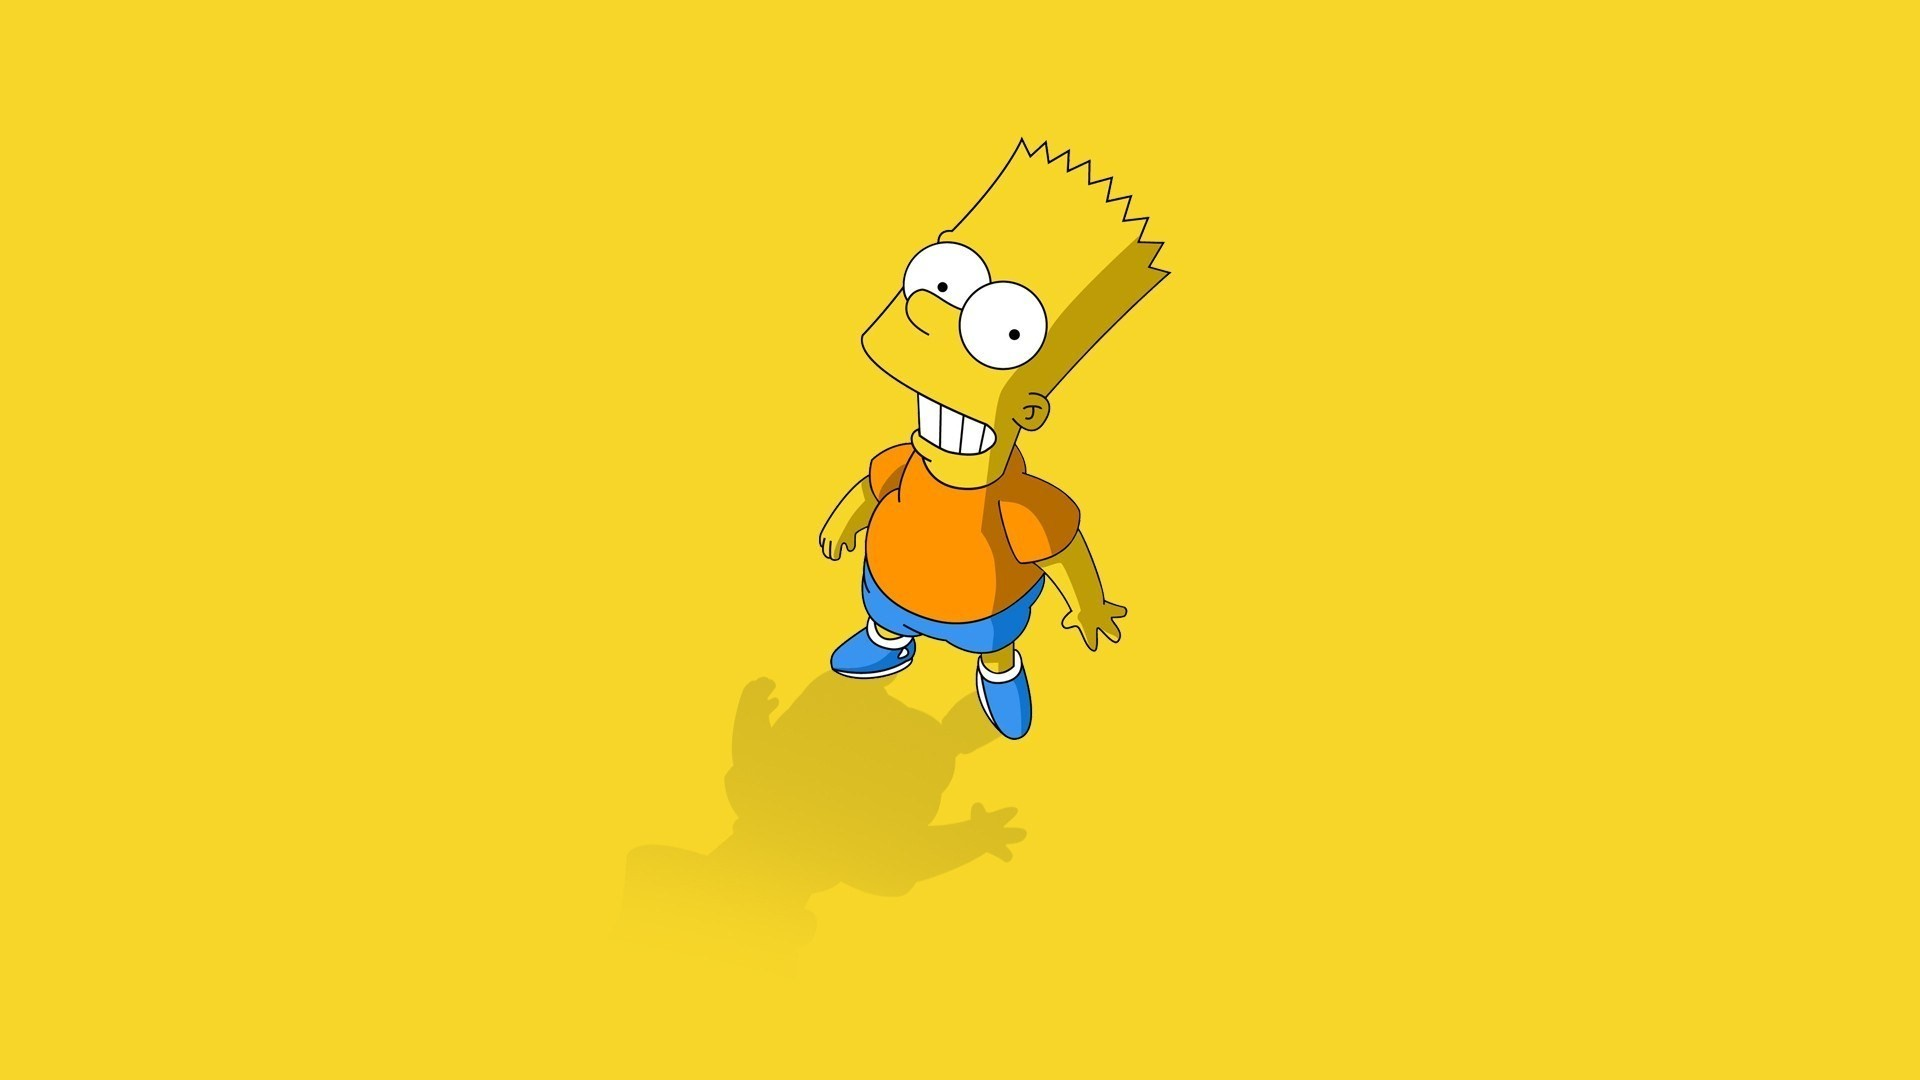 Black Cartoon Wallpaper 55 Image Collections Of: Bart Simpson Wallpapers (68+ Images